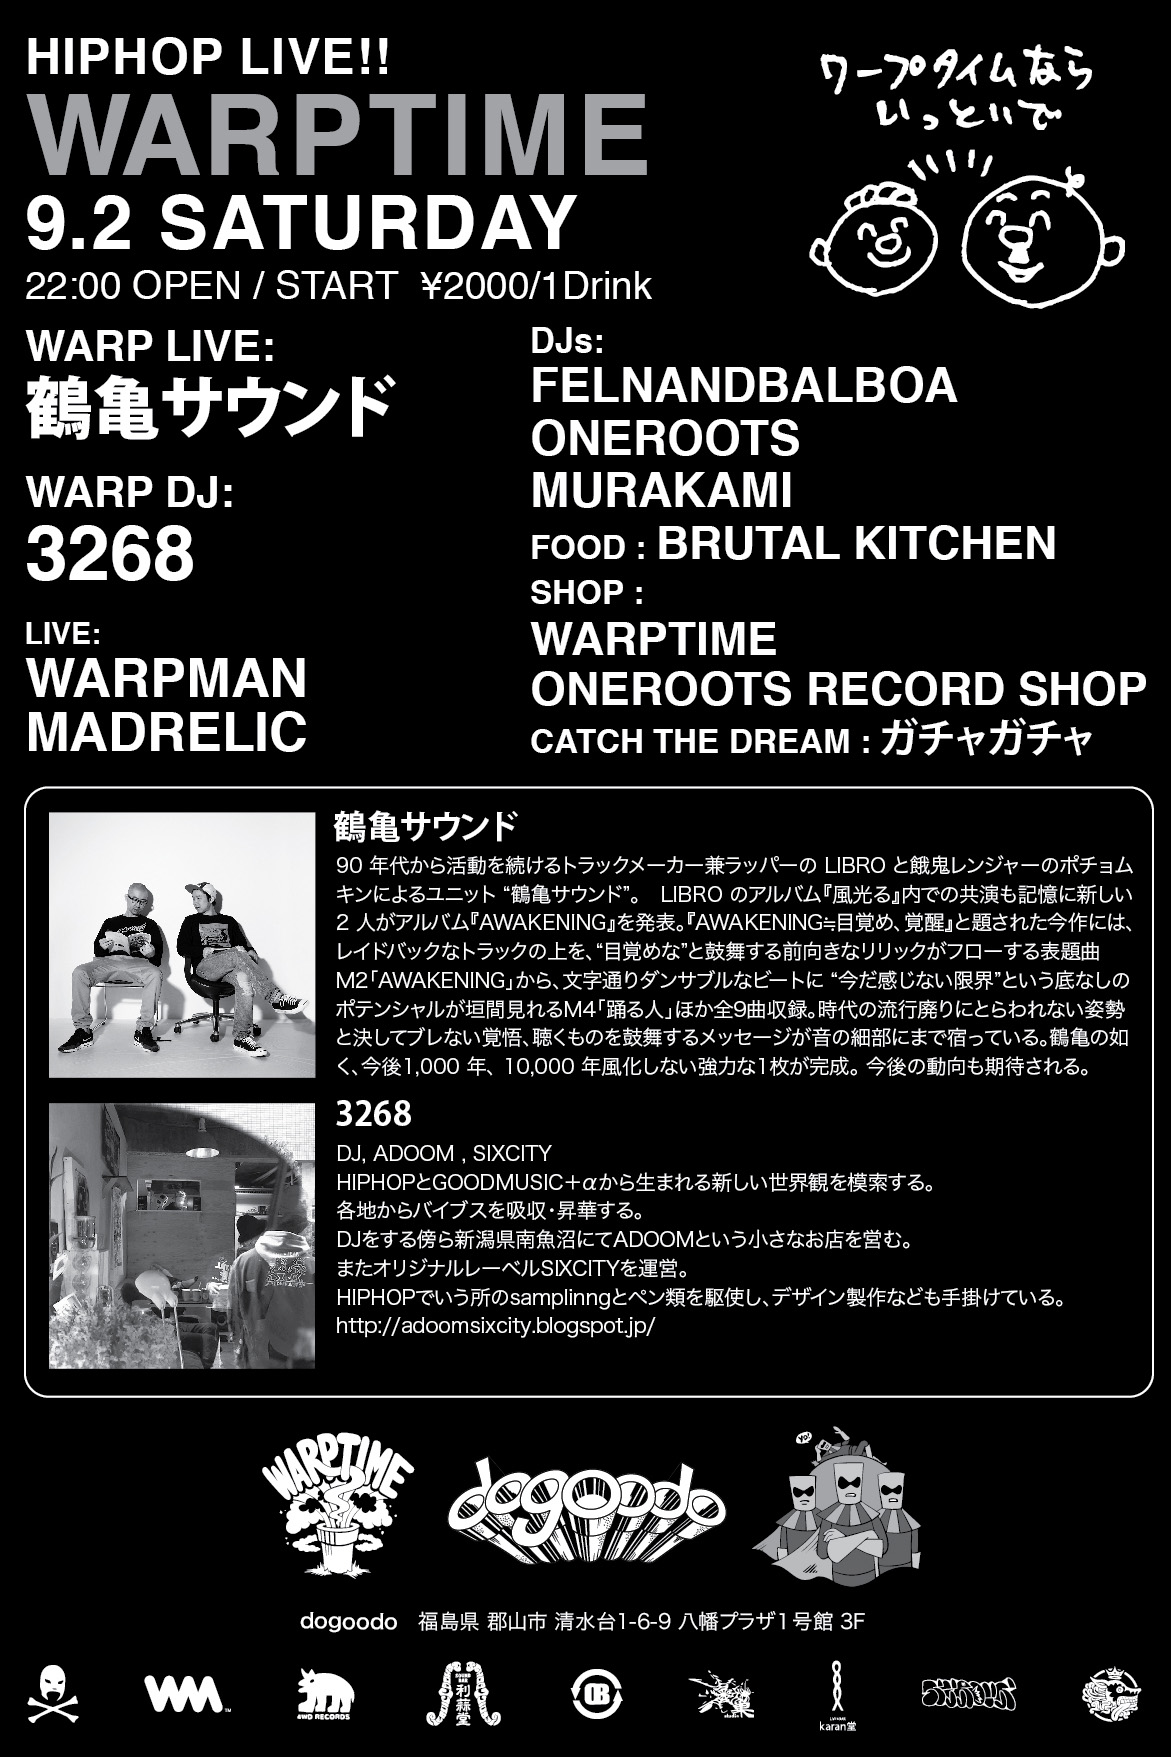 http://jcctokyo.com/news/warptime2.JPG